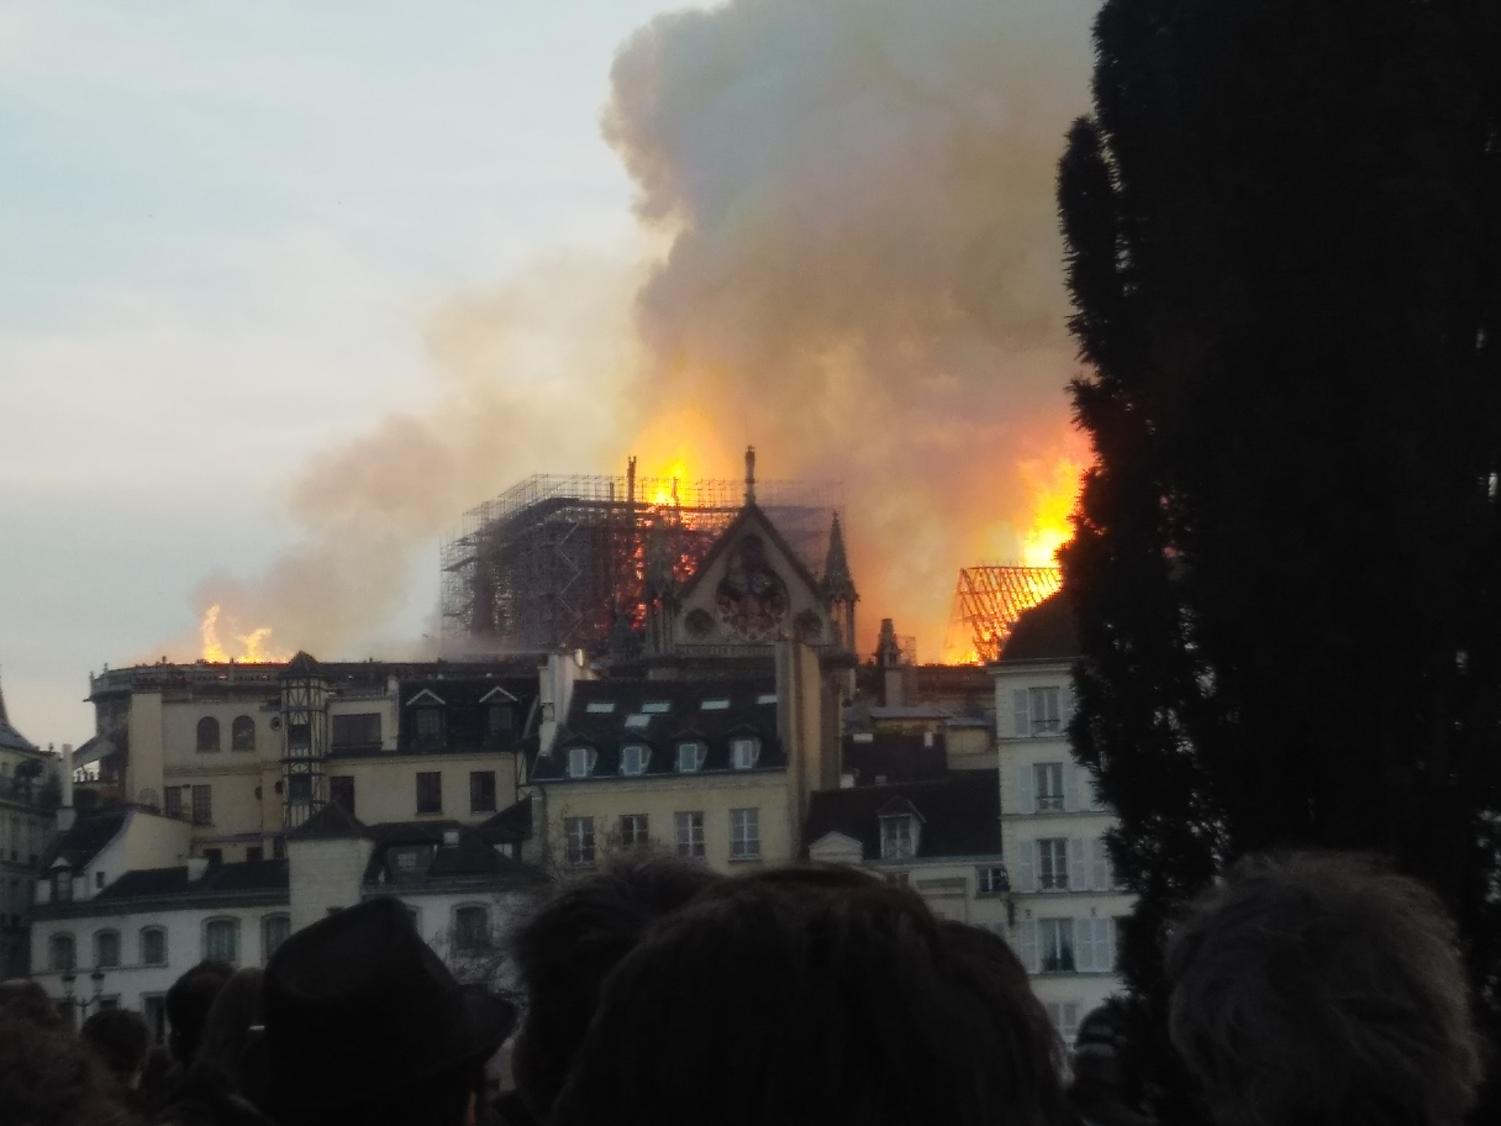 The roof of Notre Dame's roof burning.